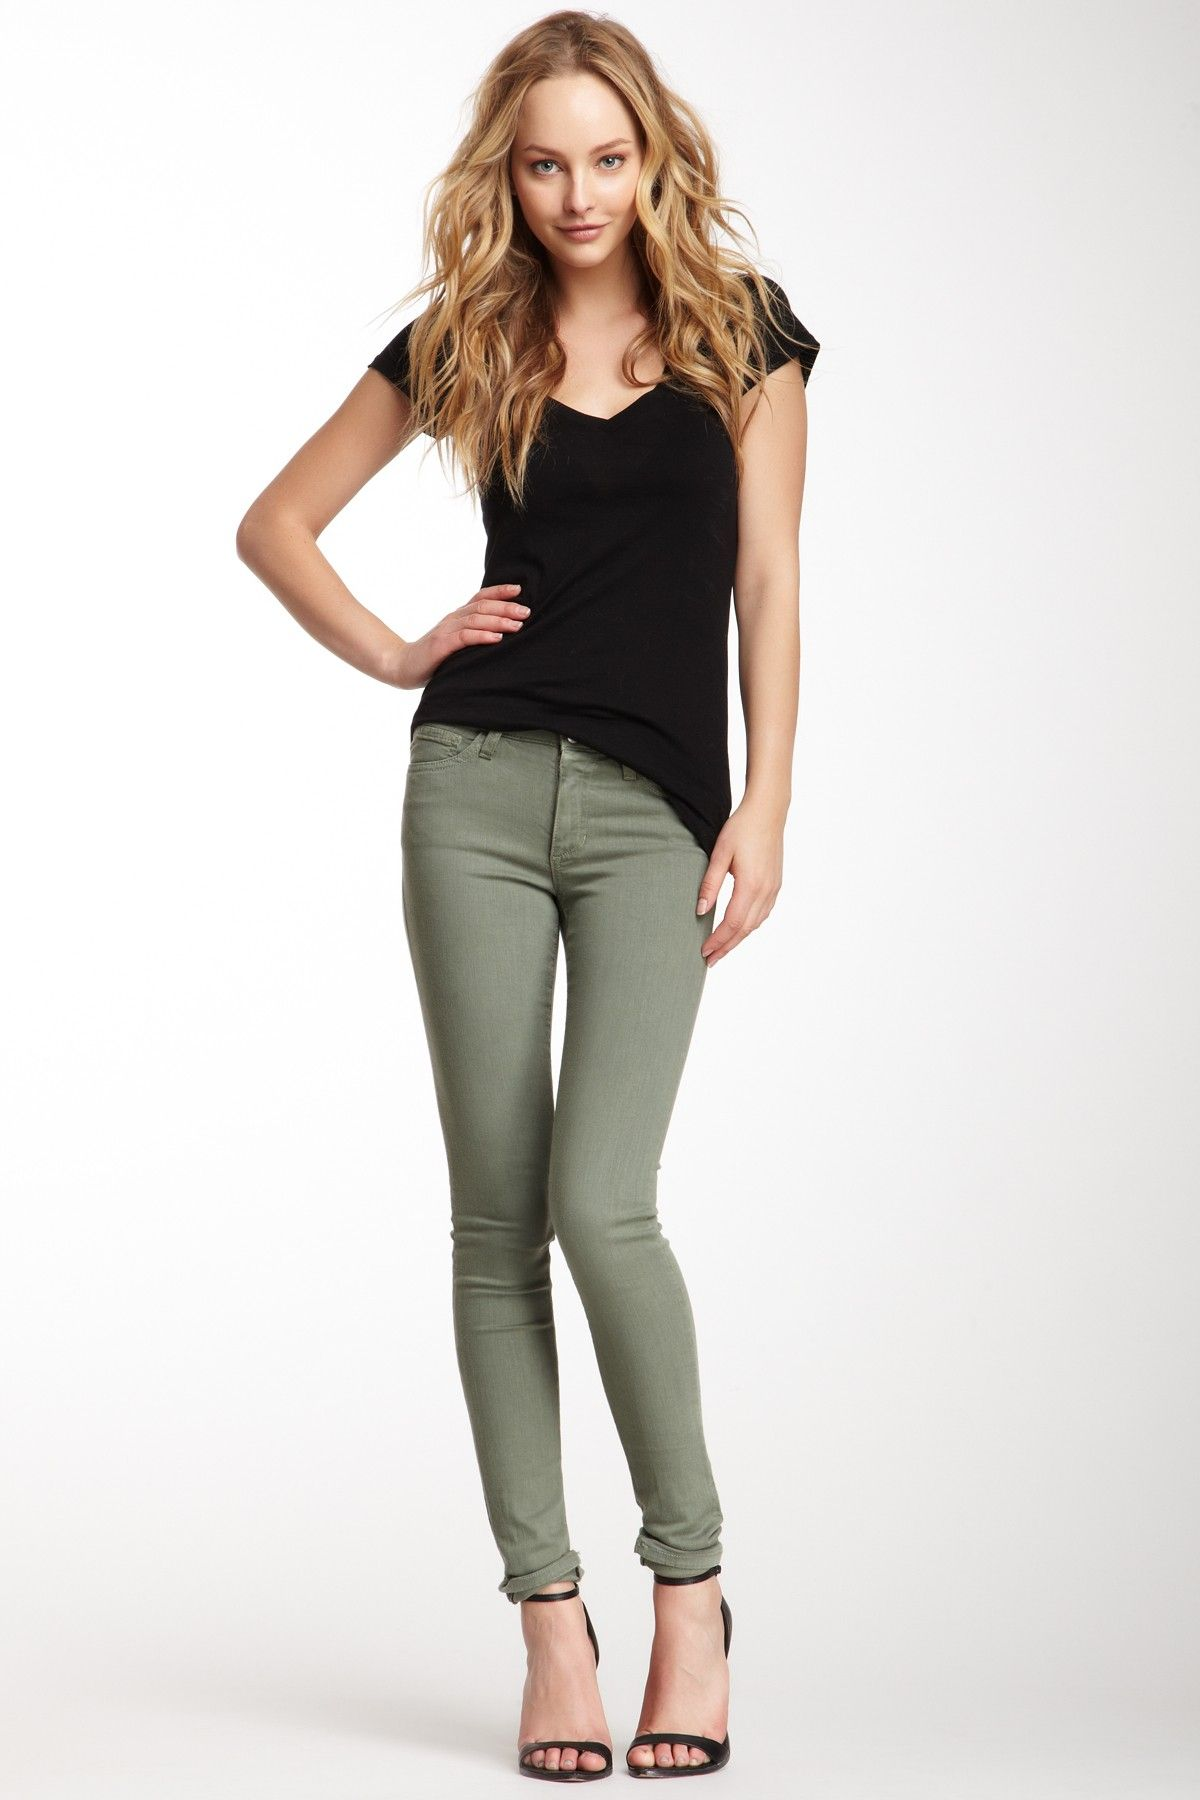 Business casual work outfit: black tee, olive skinnies. I'd top with a blazer & wear with heels or boots.